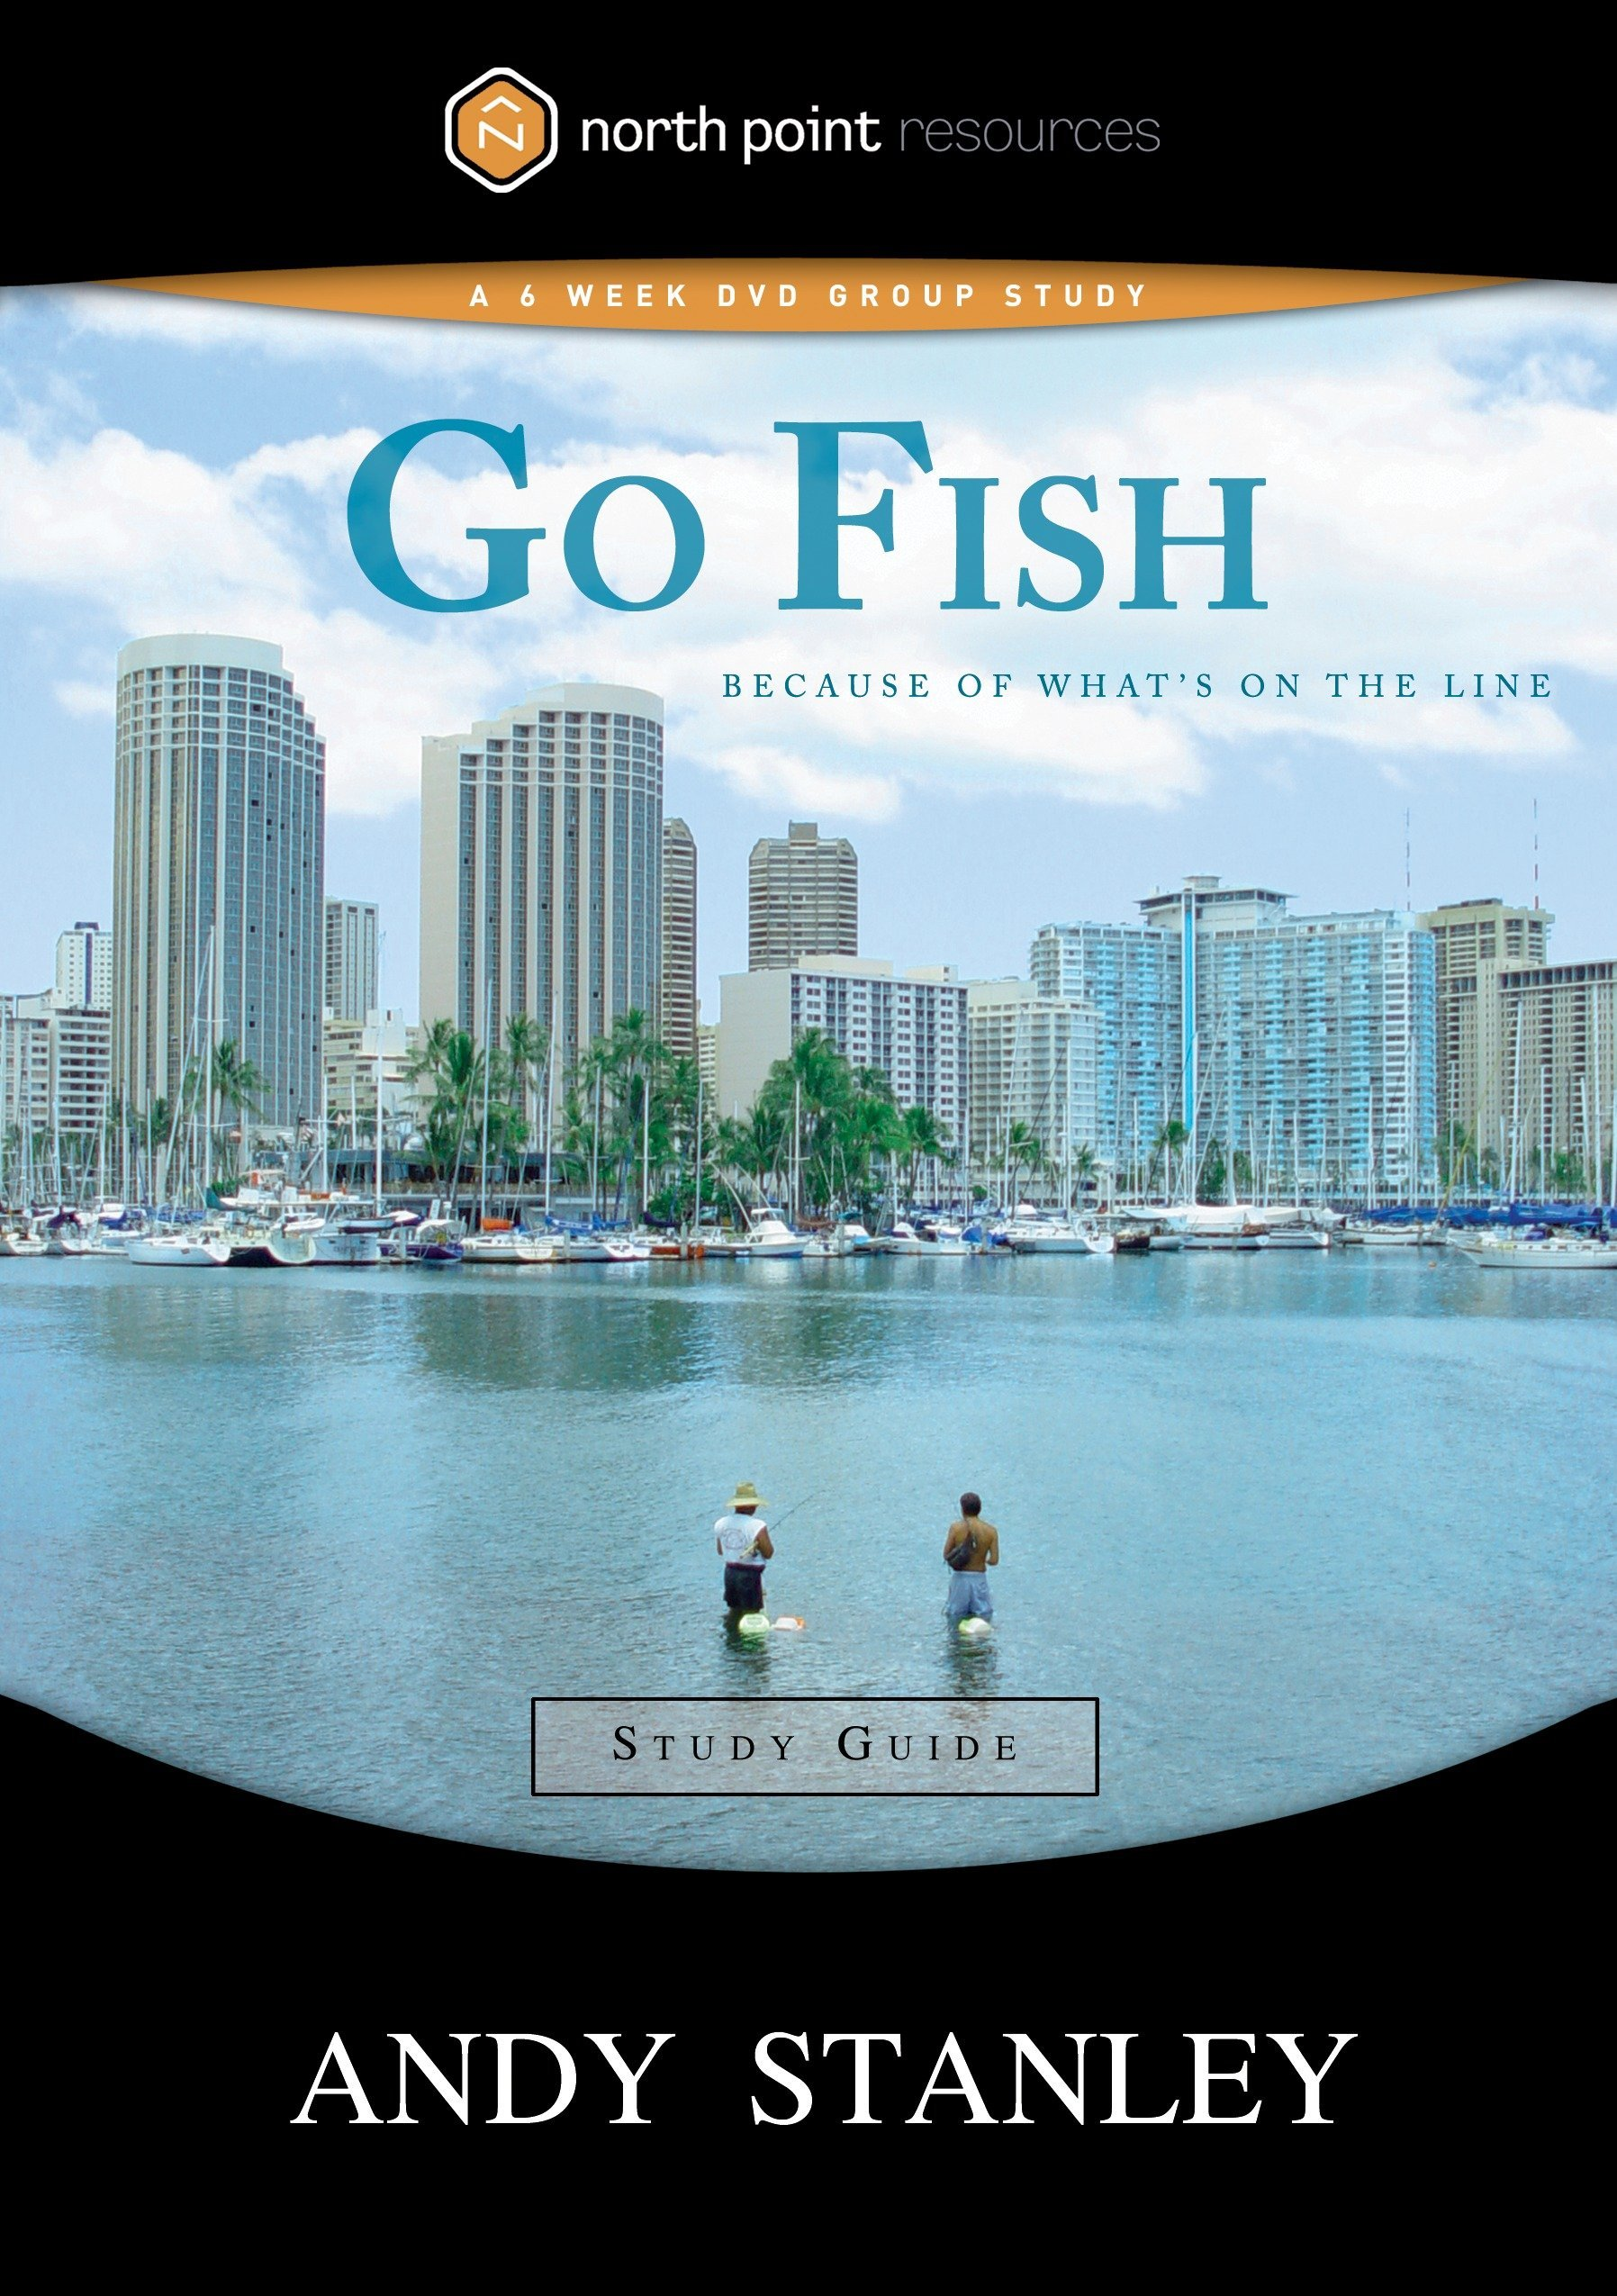 Go Fish Study Guide: Because of What's on the Line (North Point Resources  Series): Andy Stanley: 9781590525487: Amazon.com: Books